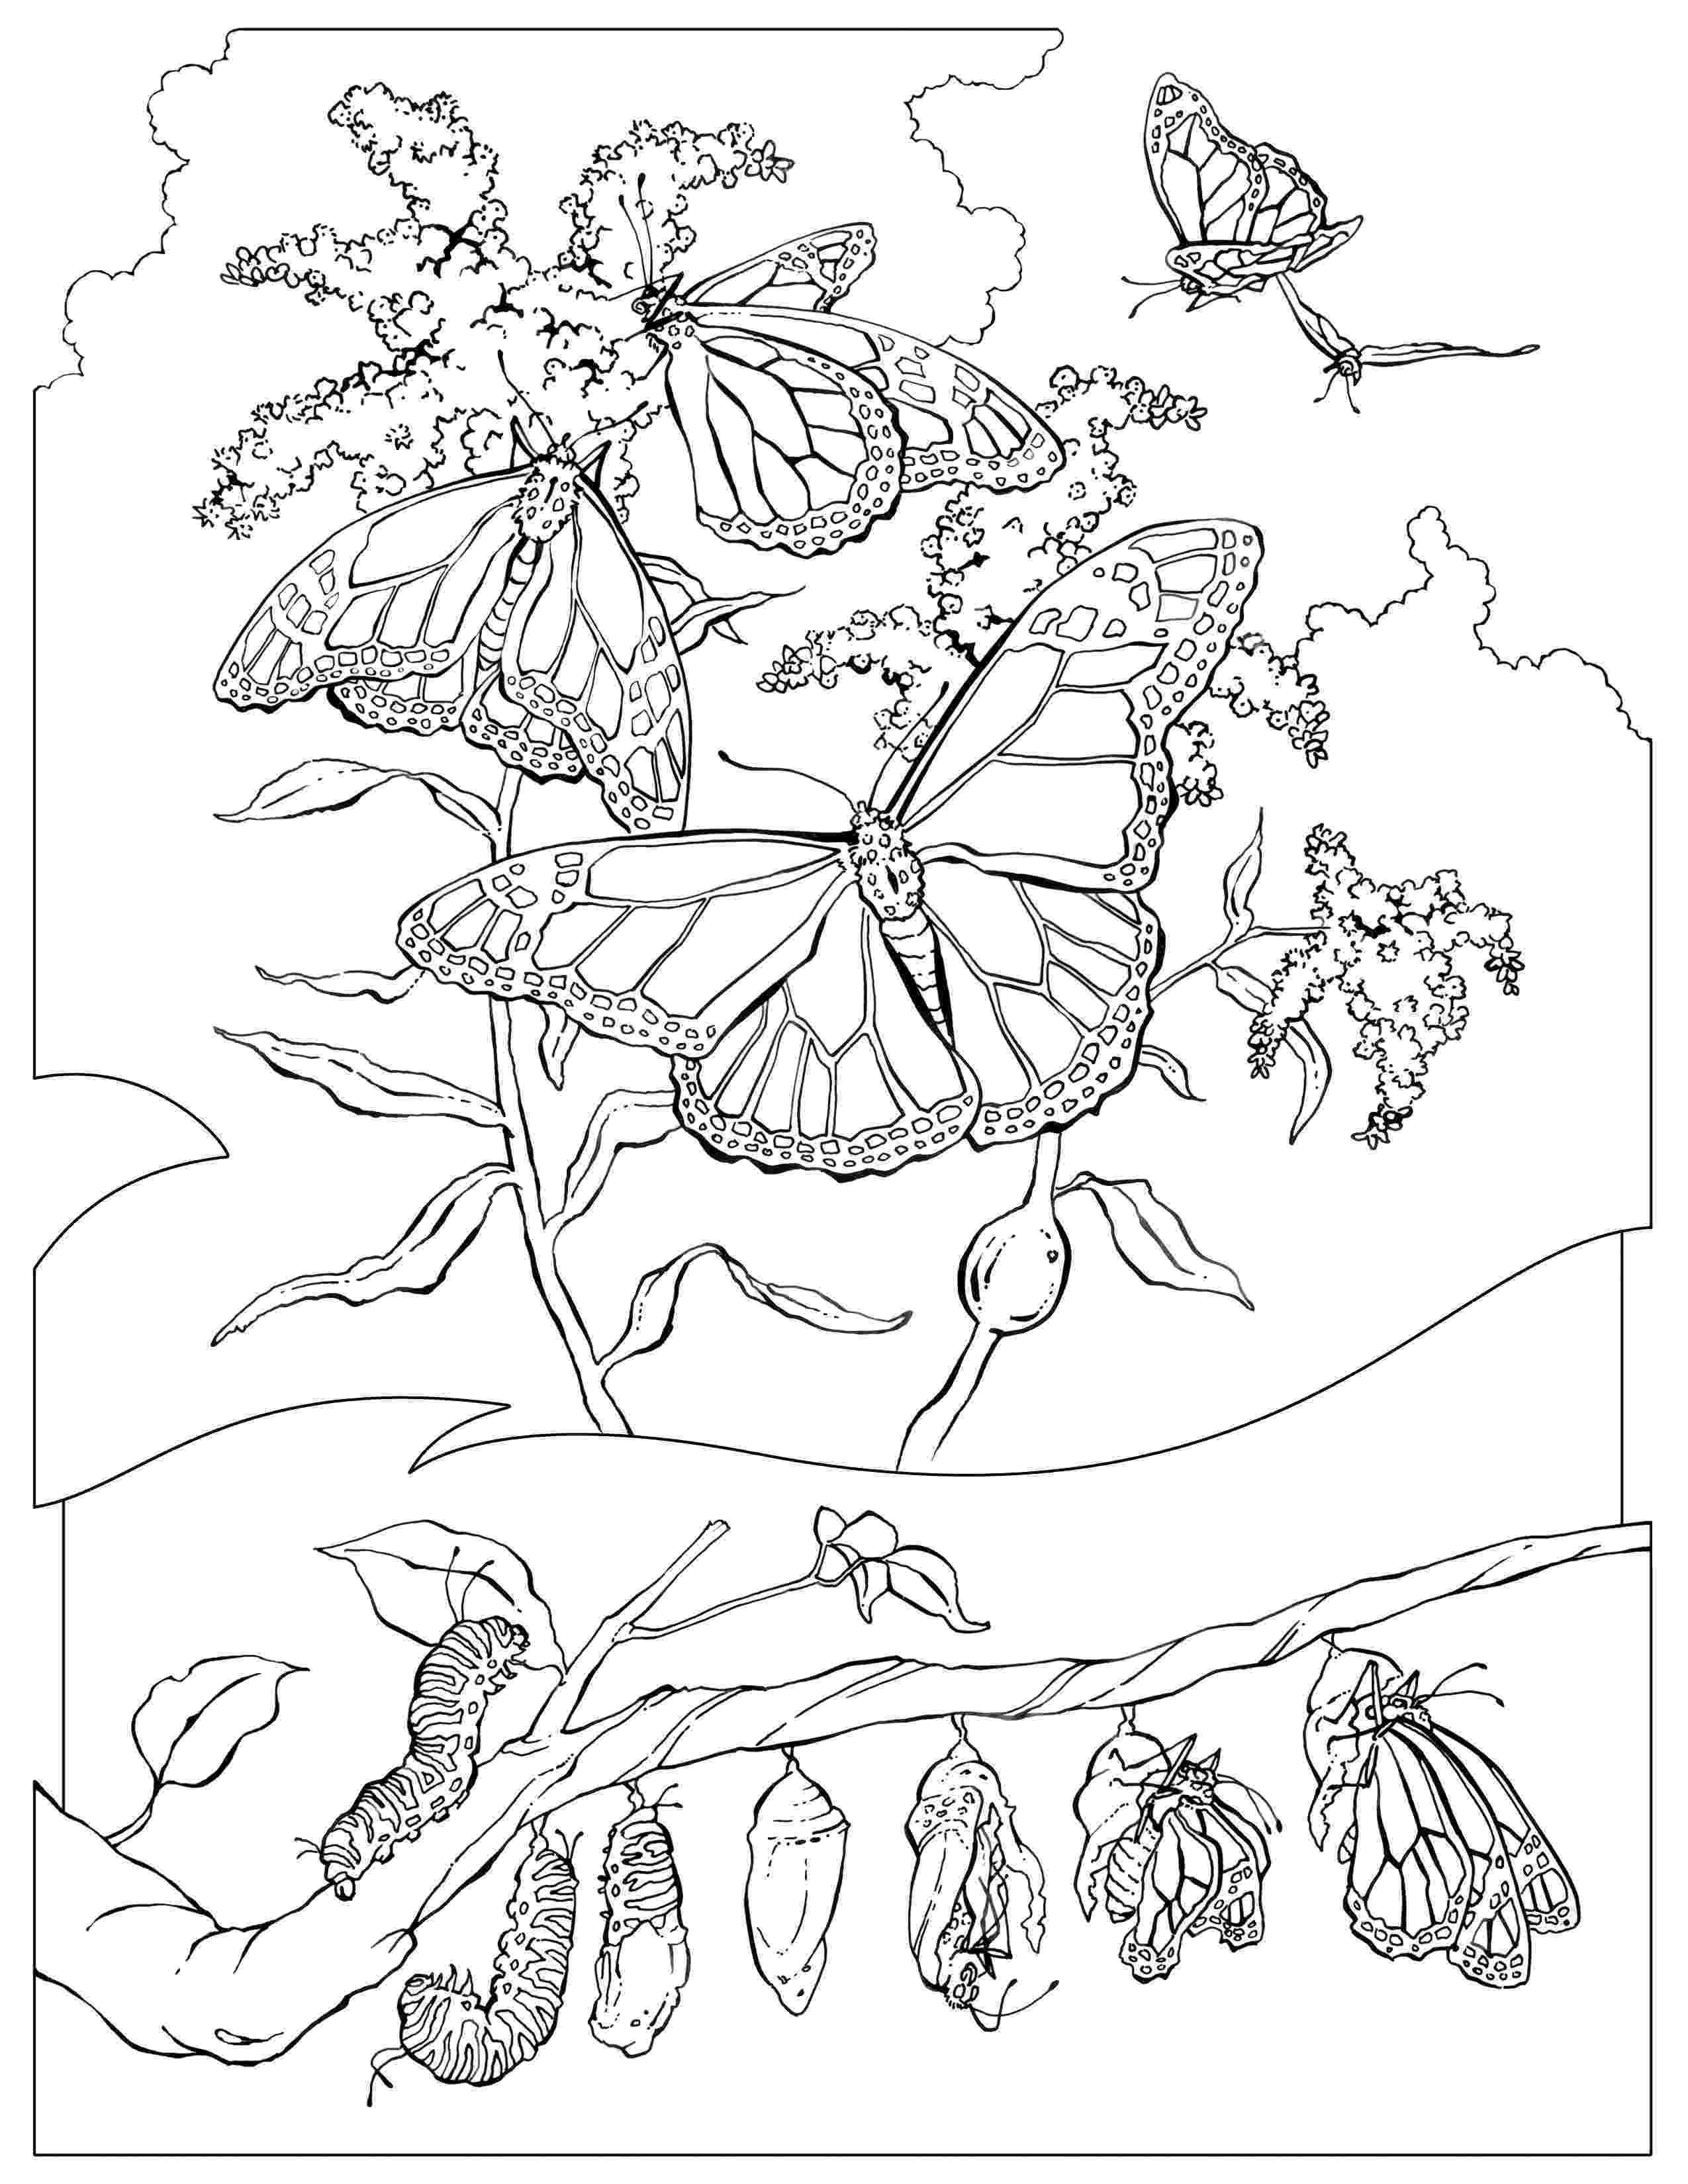 monarch butterfly coloring page monarch butterfly coloring pages download and print for free page butterfly coloring monarch